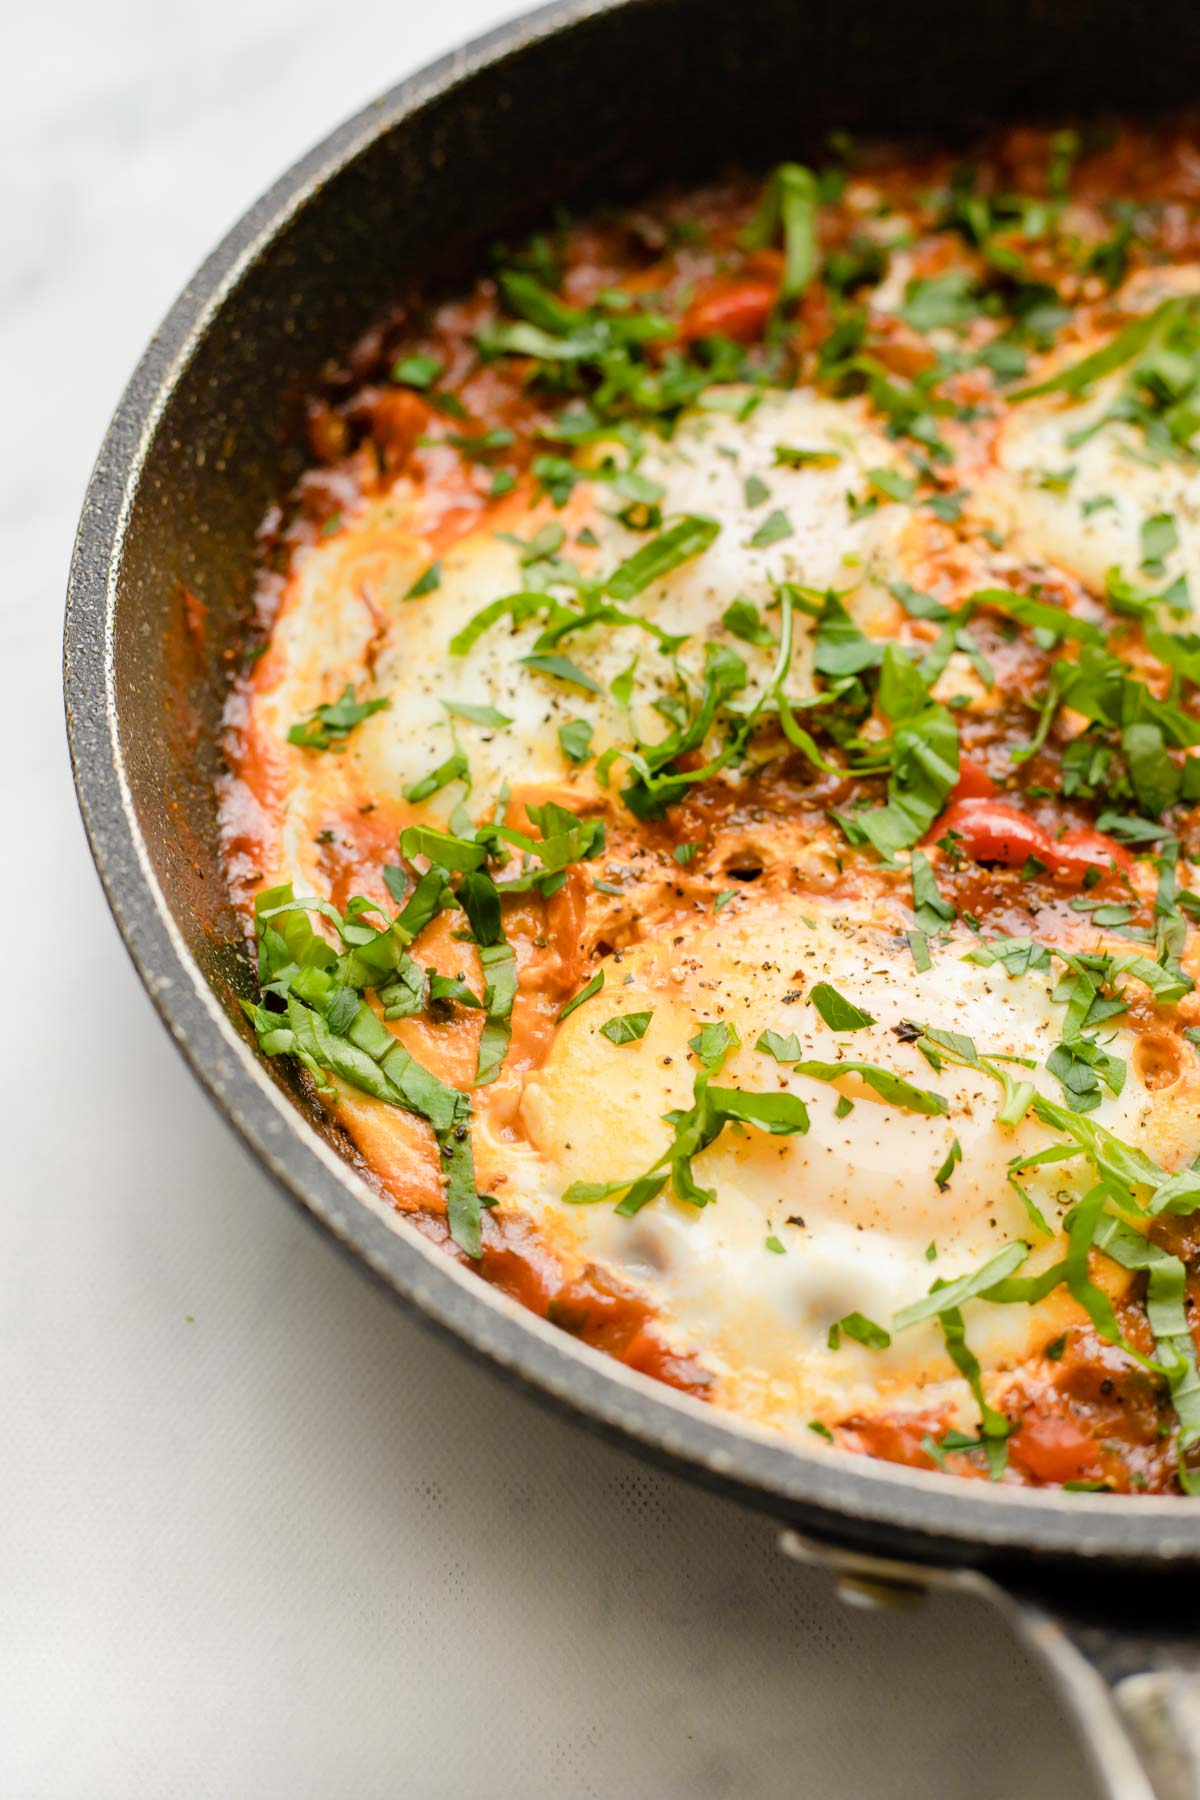 Close up of eggs cooked in a tomato sauce making eggs in purgatory.